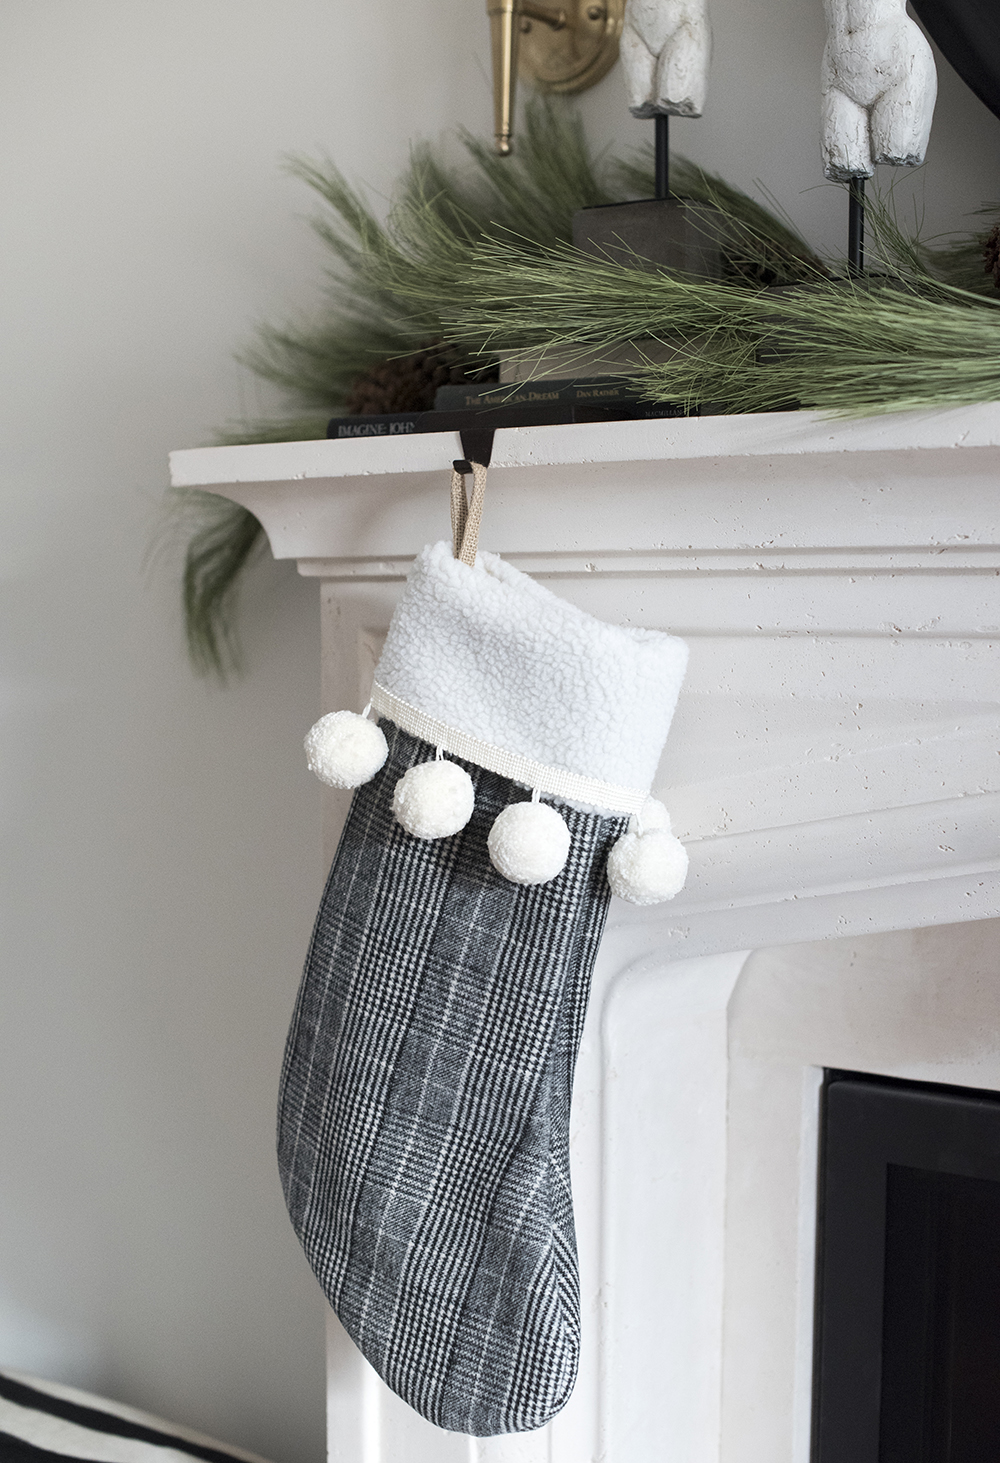 Slipcover Christmas Stocking DIY - roomfortuesday.com